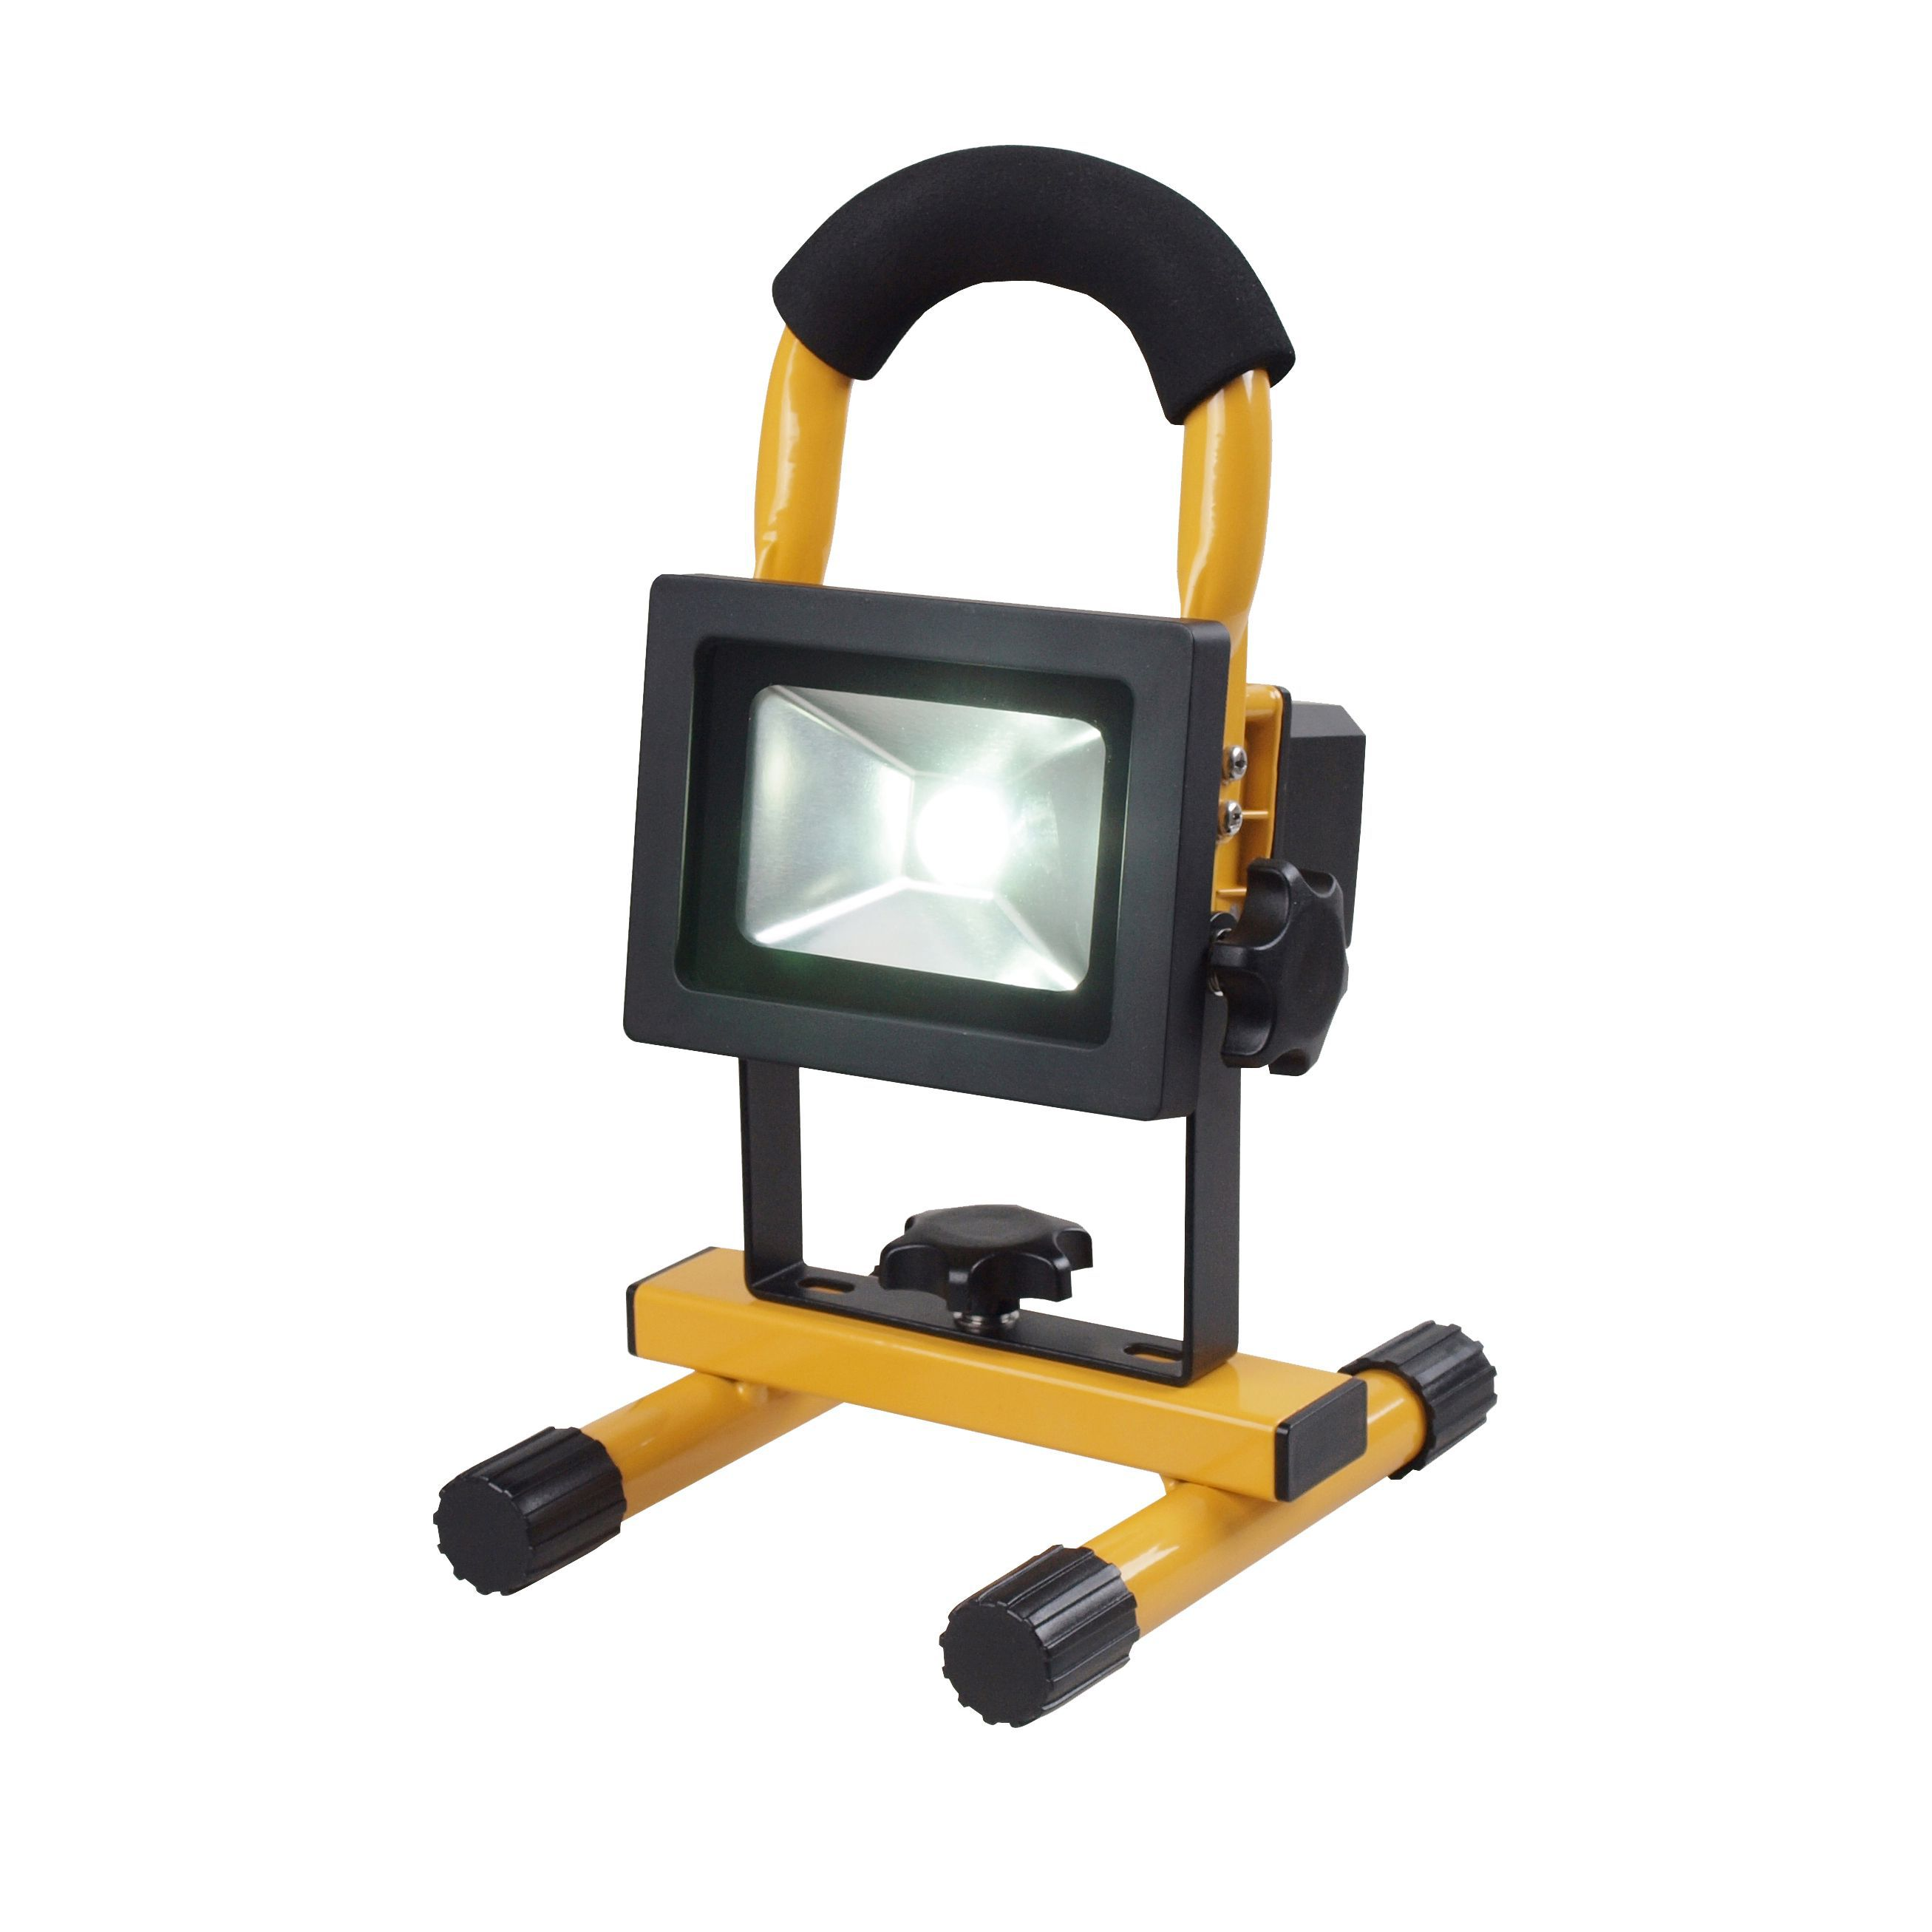 Led Cabinet Lighting Screwfix: Diall LED Work Light 10W AE0182